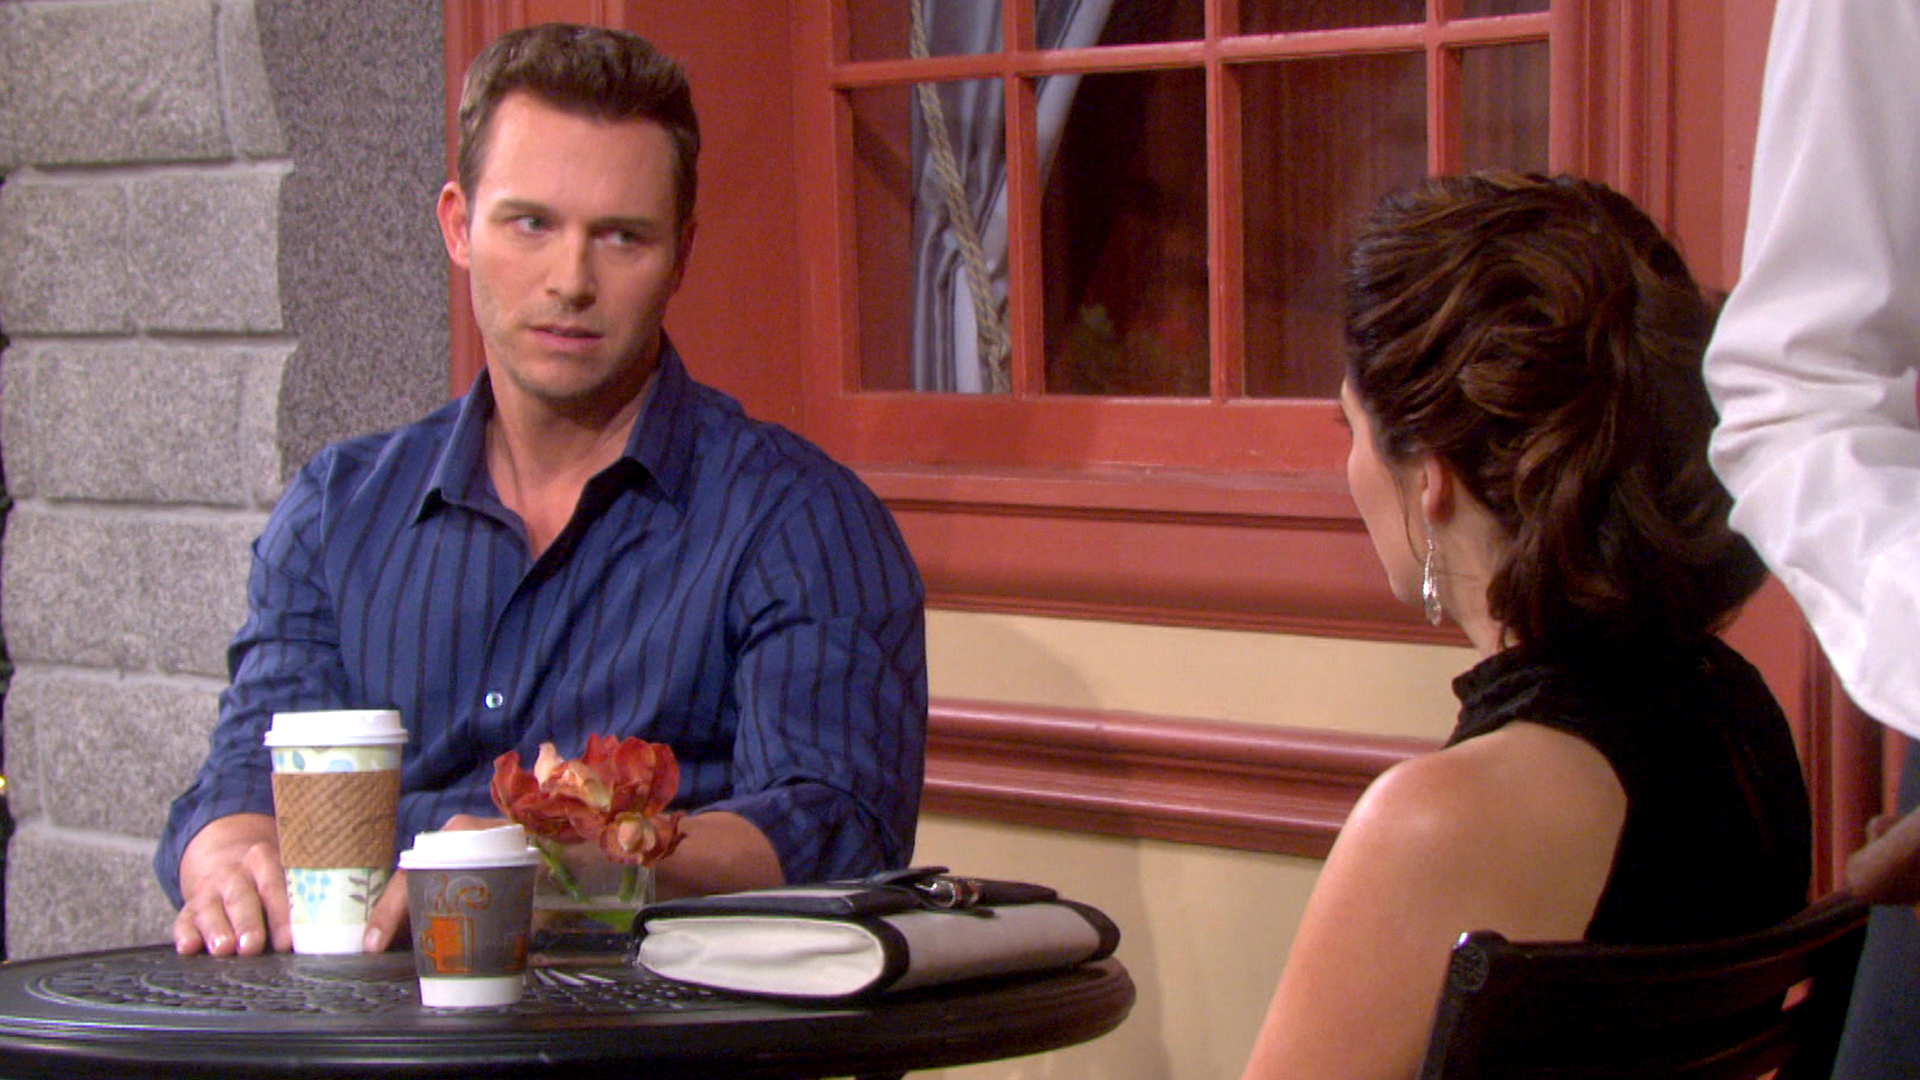 Brady tells Theresa he has to stop seeing her.